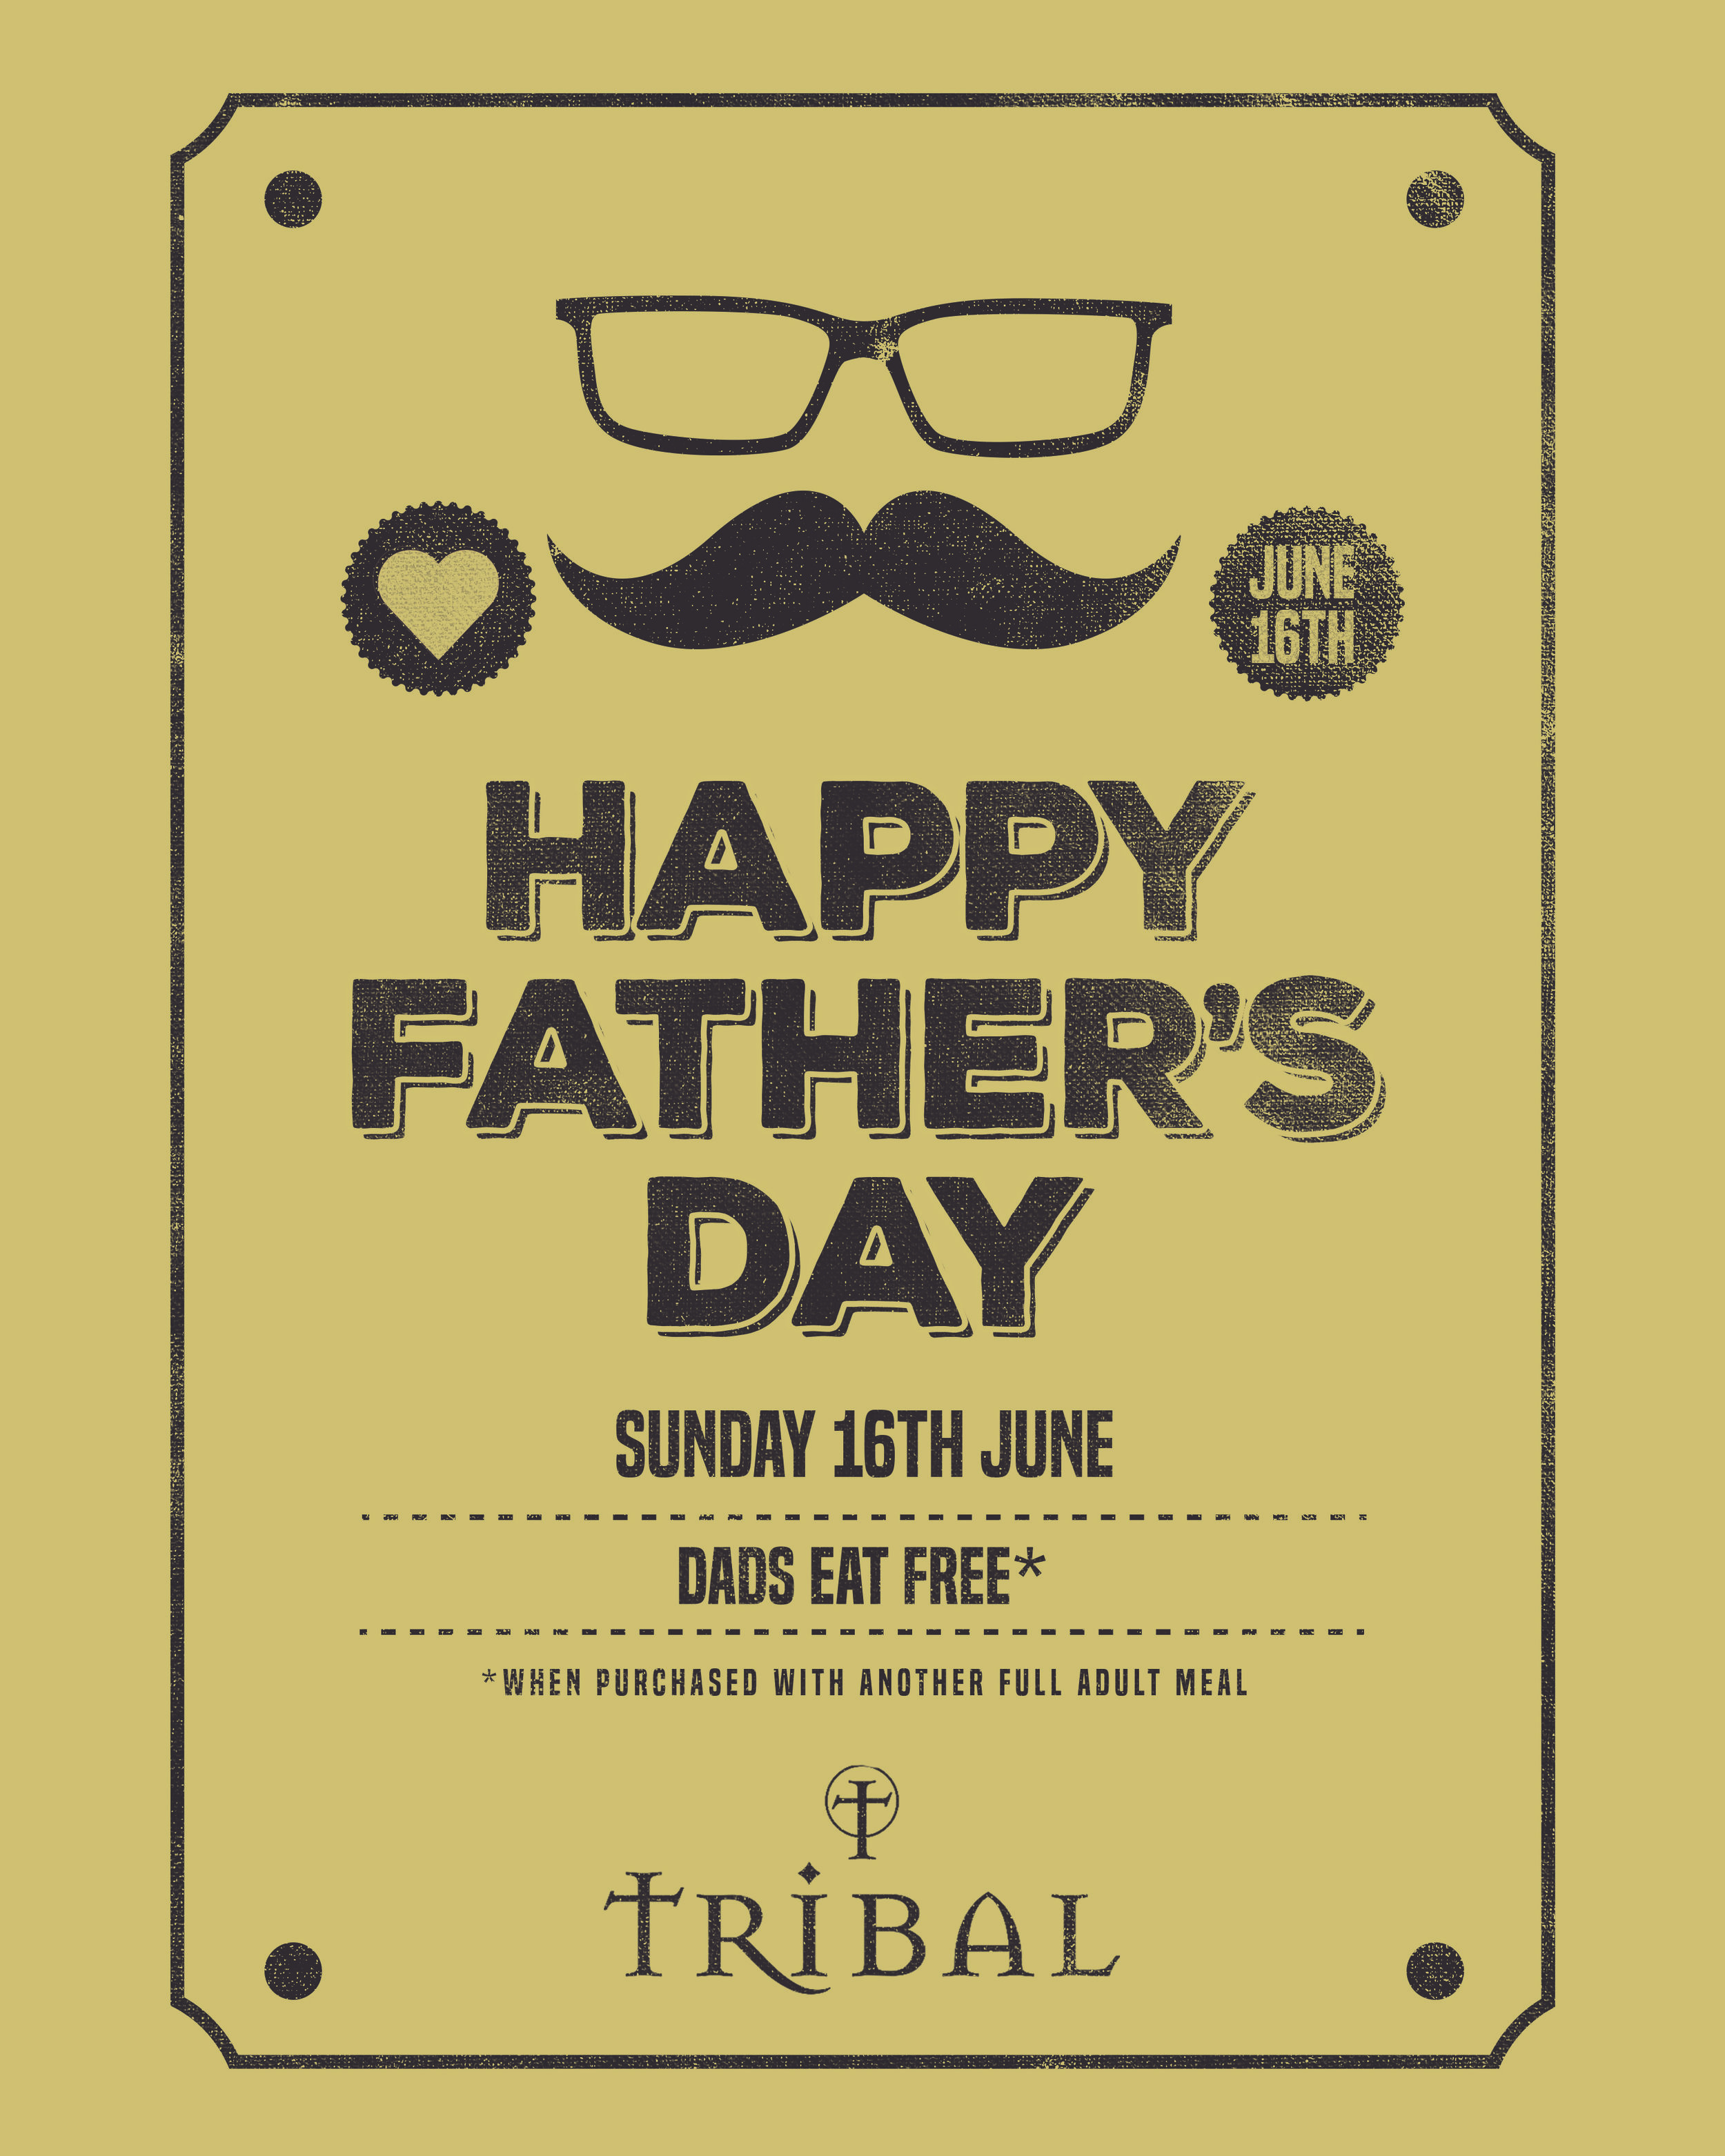 Father's Day Flyer IG.jpg